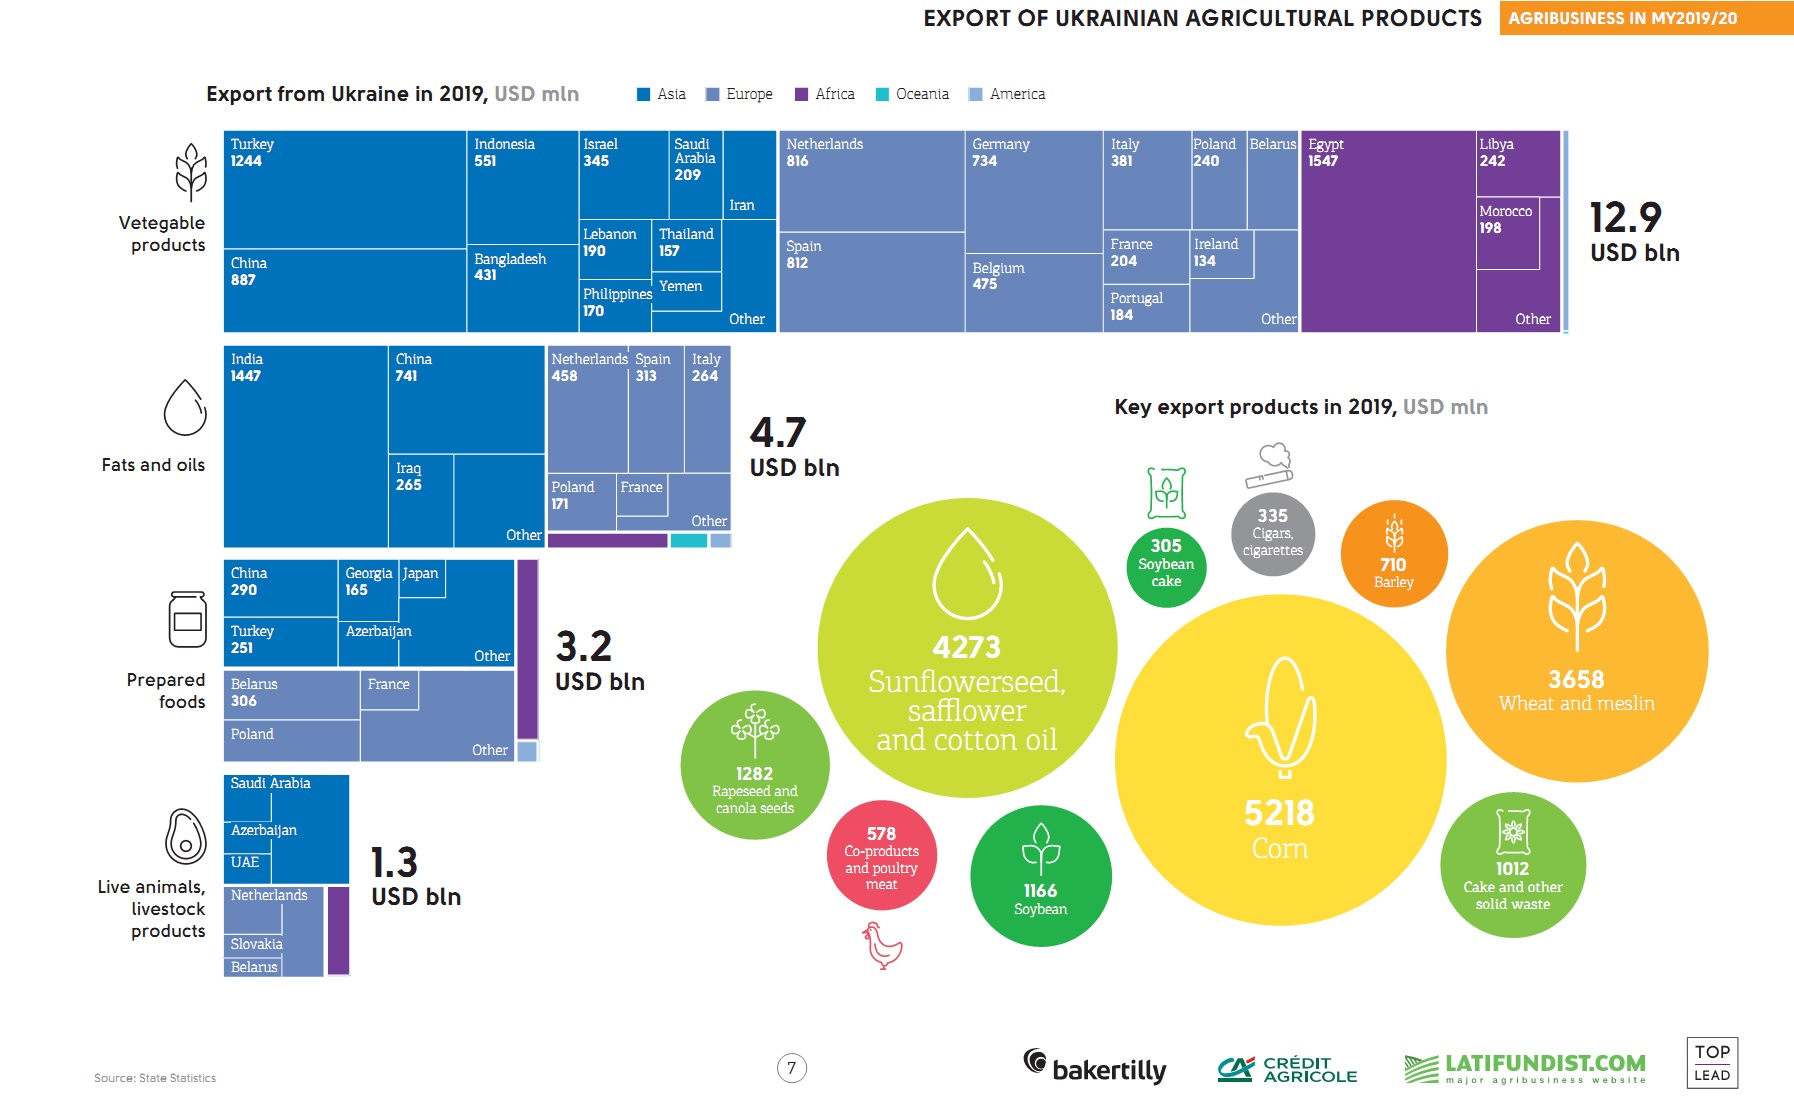 Export of Ukrainian ag commodities (click for full resolution)